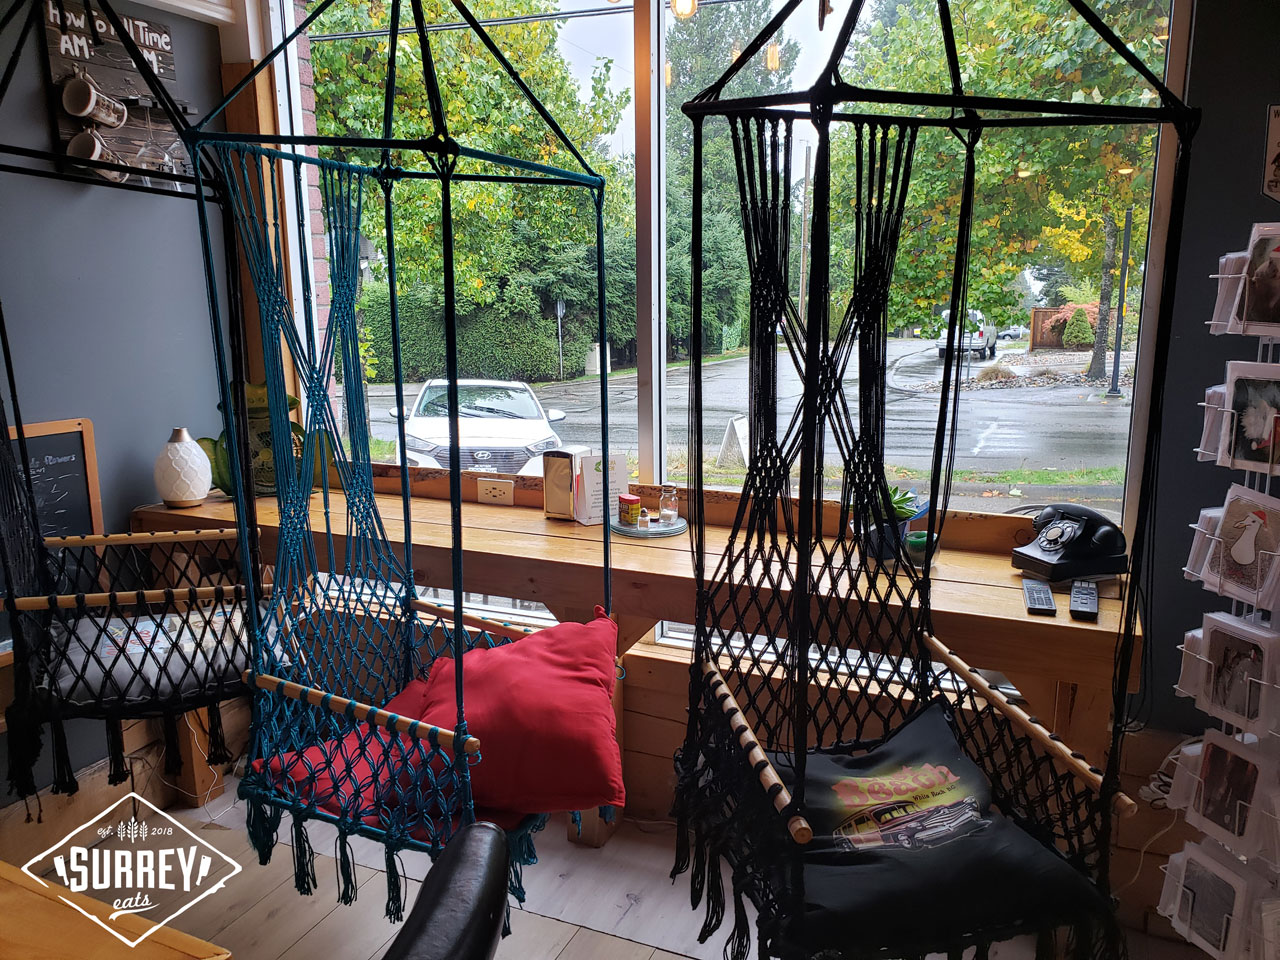 Hammock-like chairs hang from the ceiling inside Dudes Coffee House with a view outside through the window